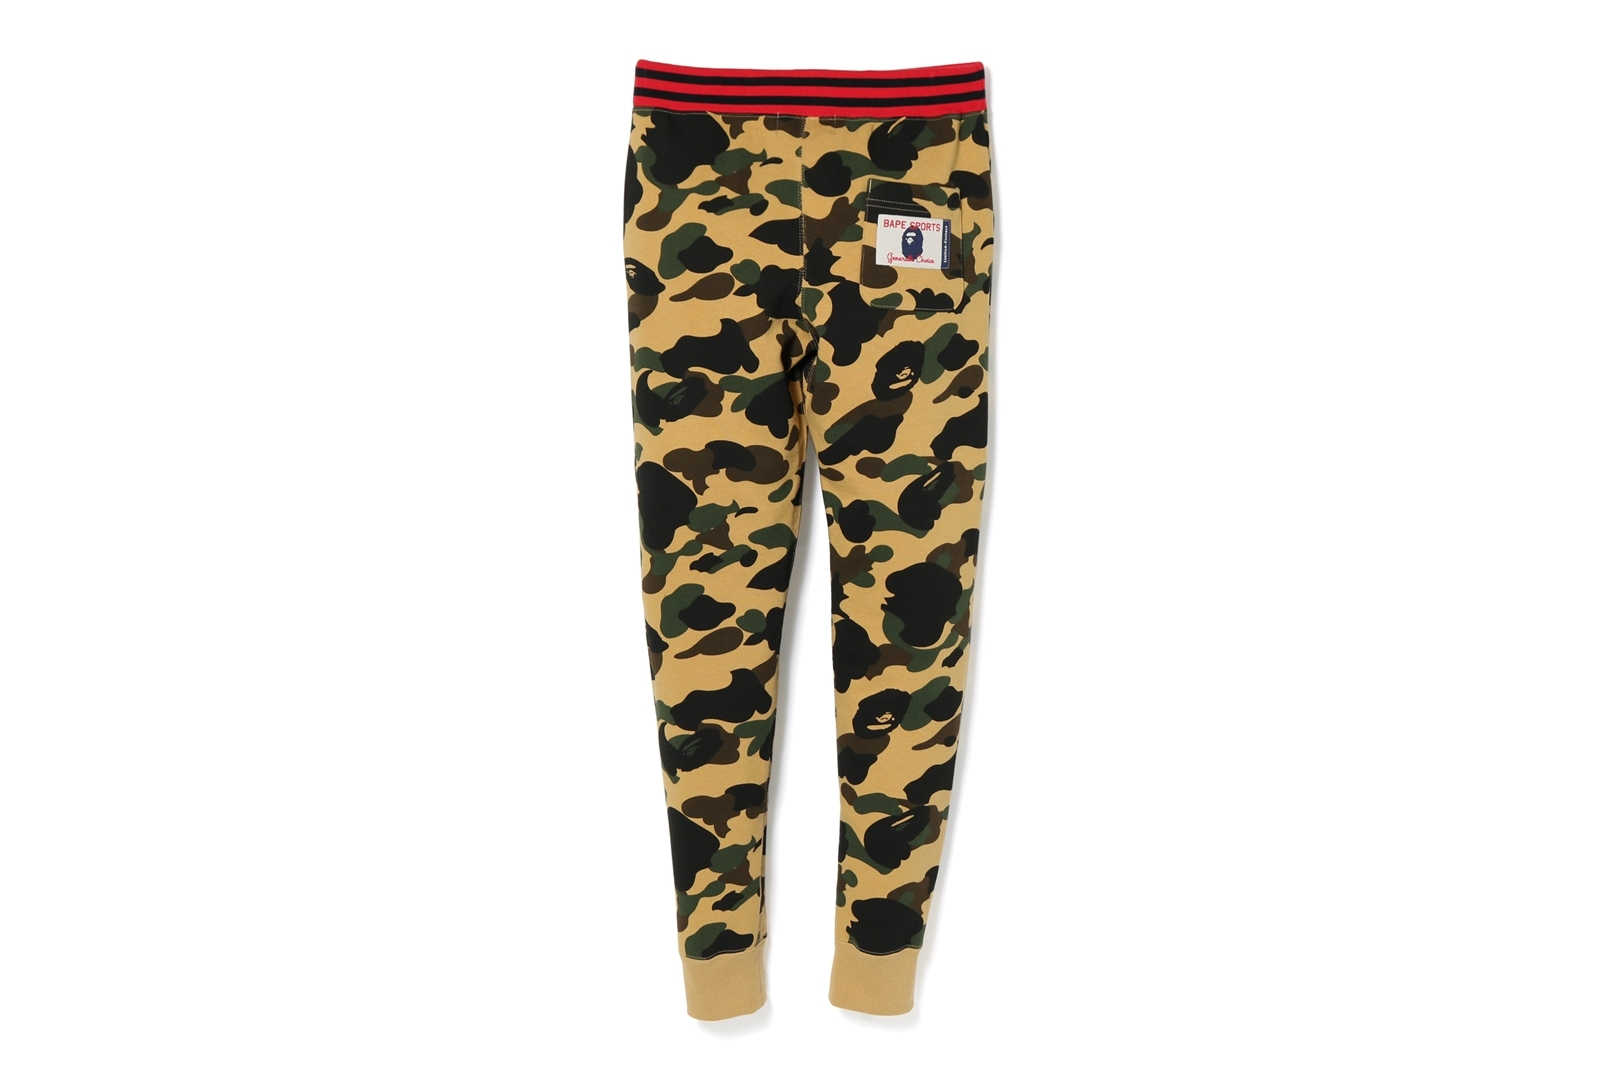 1ST CAMO SHARK SLIM SWEAT PANTS_a0174495_17335802.jpg